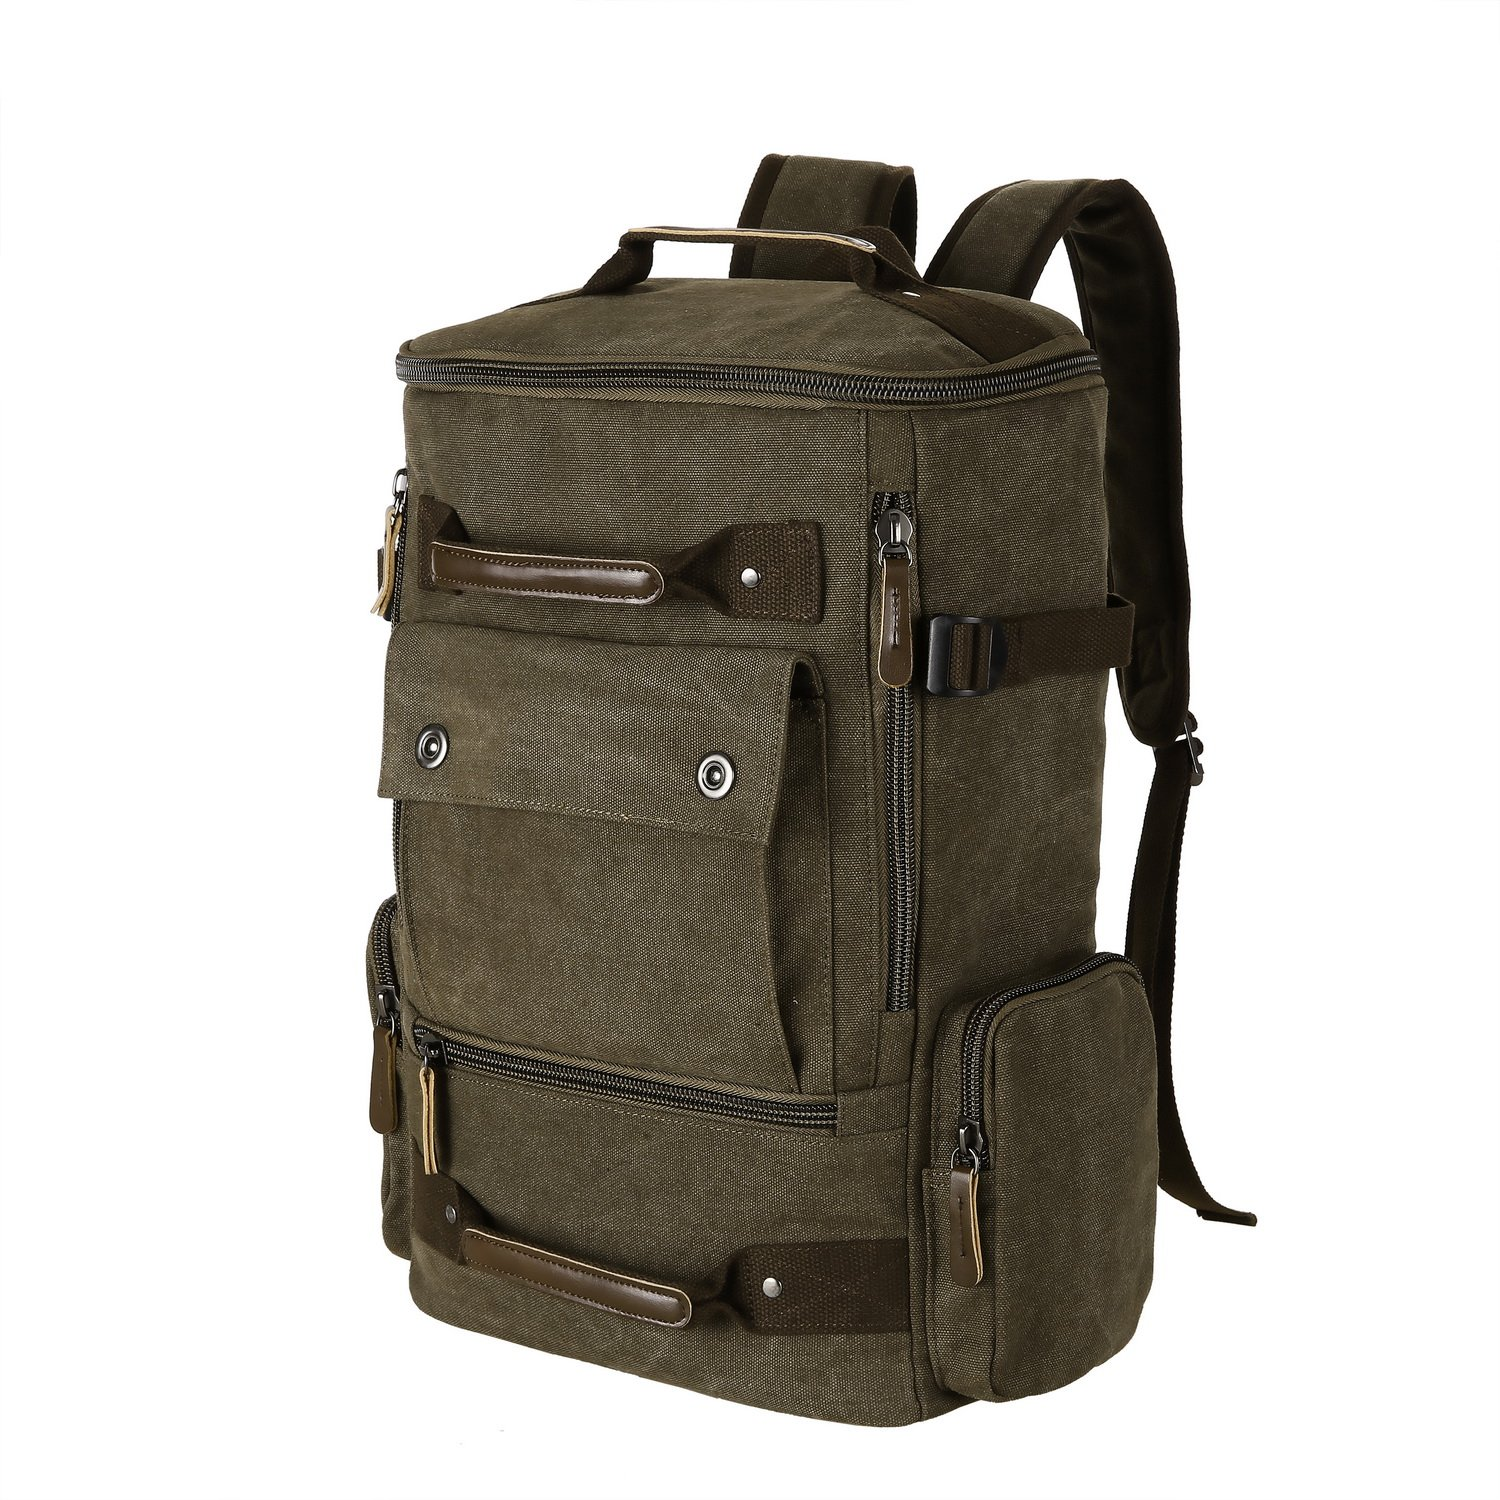 ANCHEER Unisex Canvas Travel Backpack, Large Capacity Vintage School Hiking Camping Bag Fits 17'' Laptop, 30 L